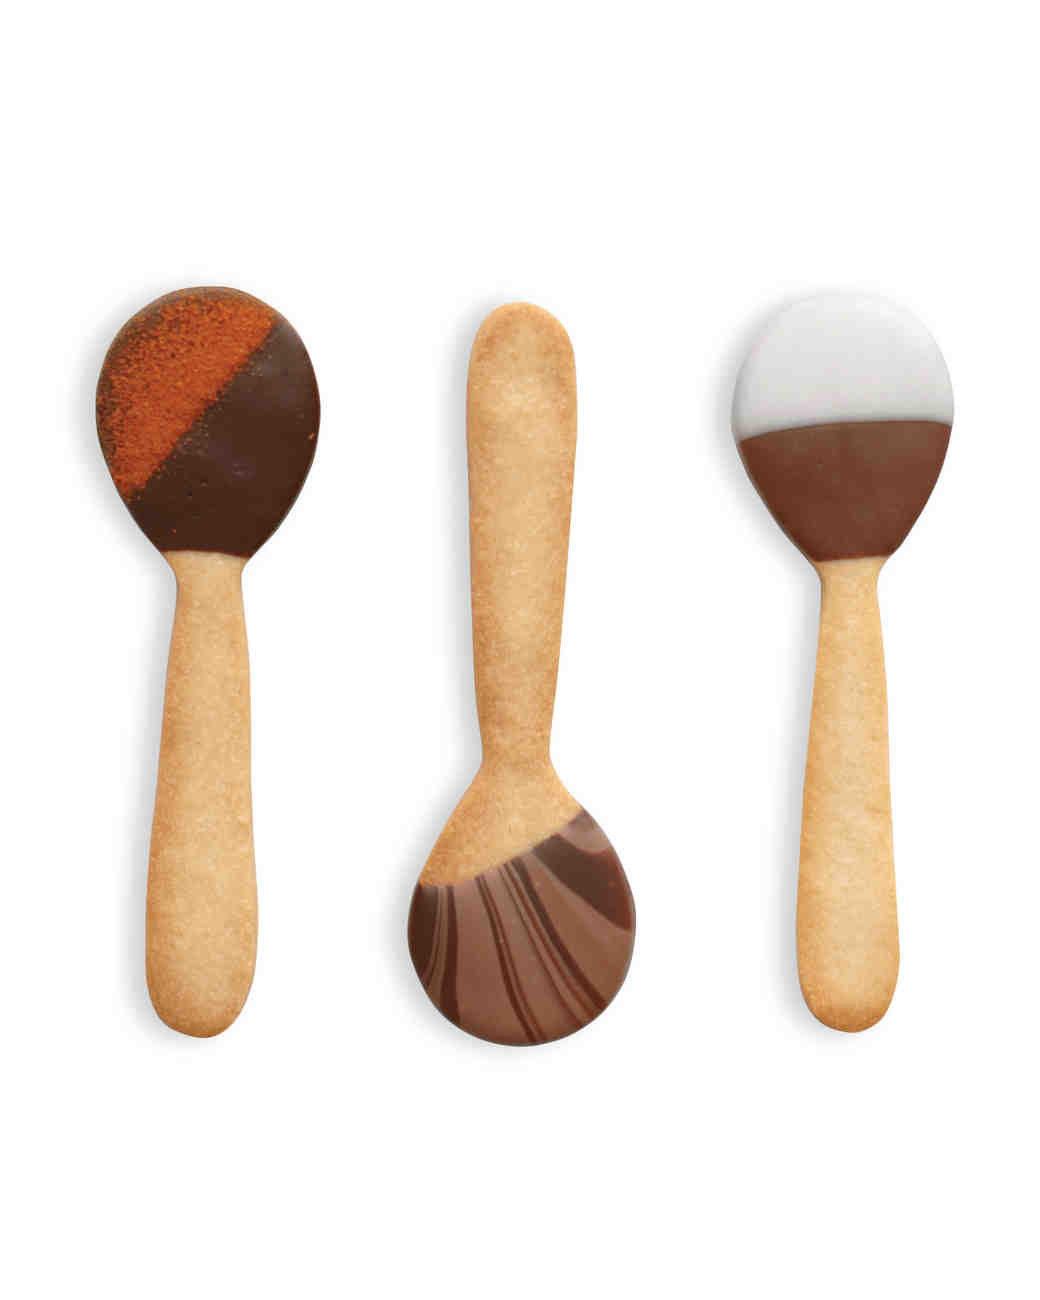 cookie-spoon-mwd109353.jpg